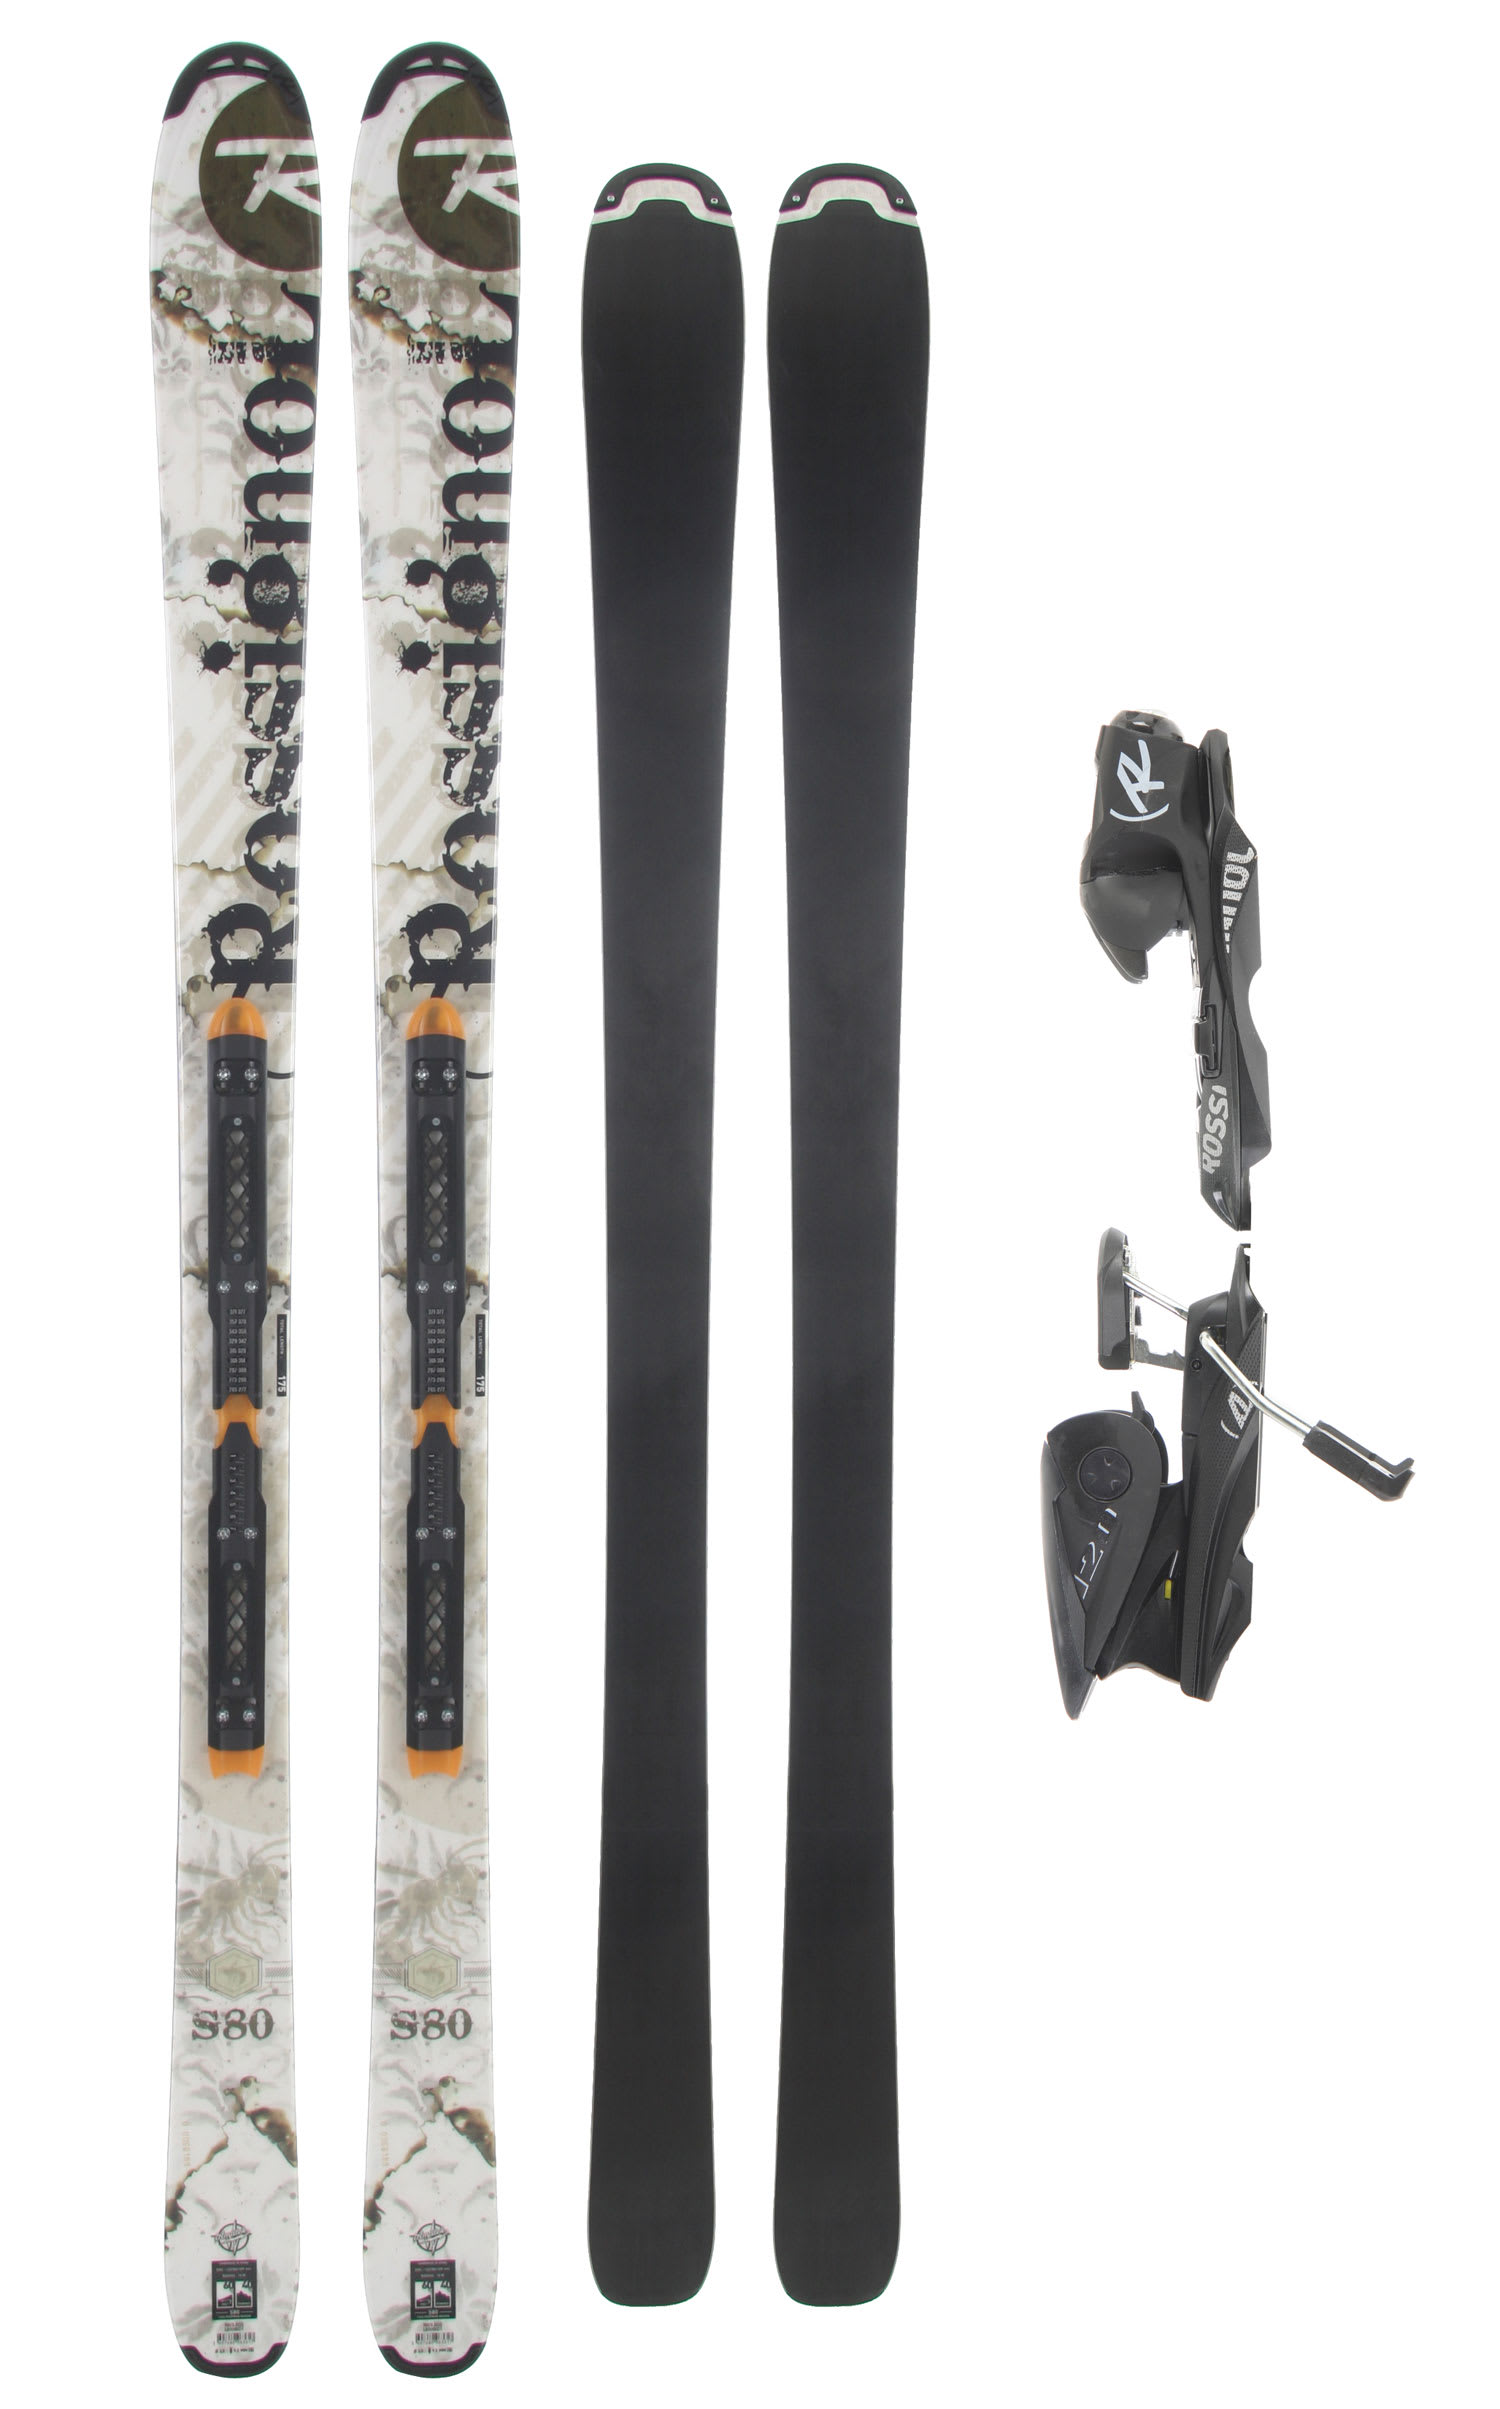 Rossignol Ski Reviews | Skis.com